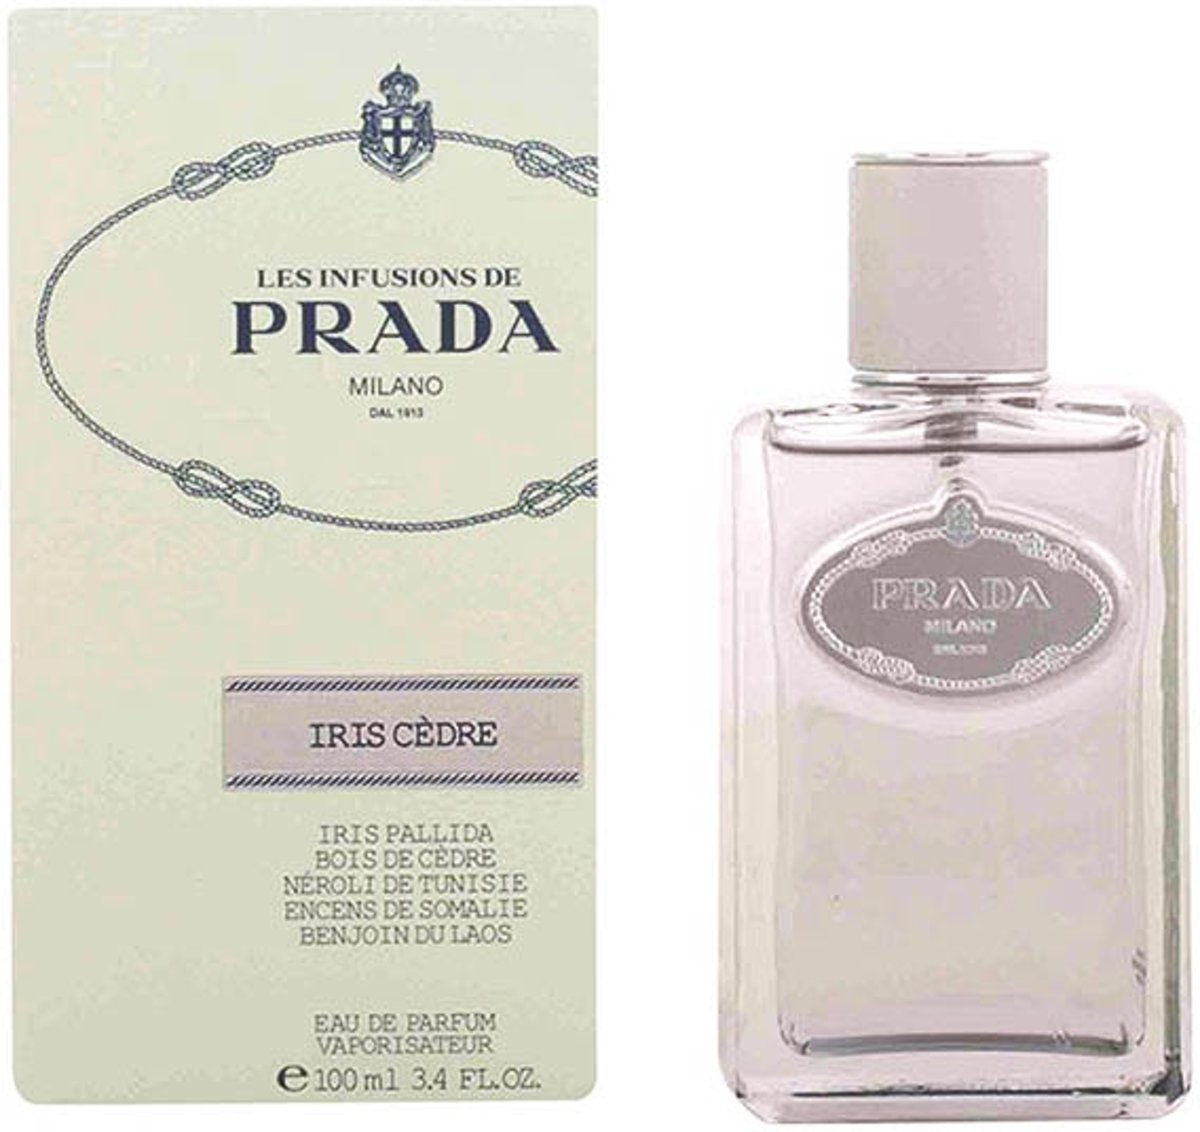 IRIS CEDRE eau de toilette spray 100 ml